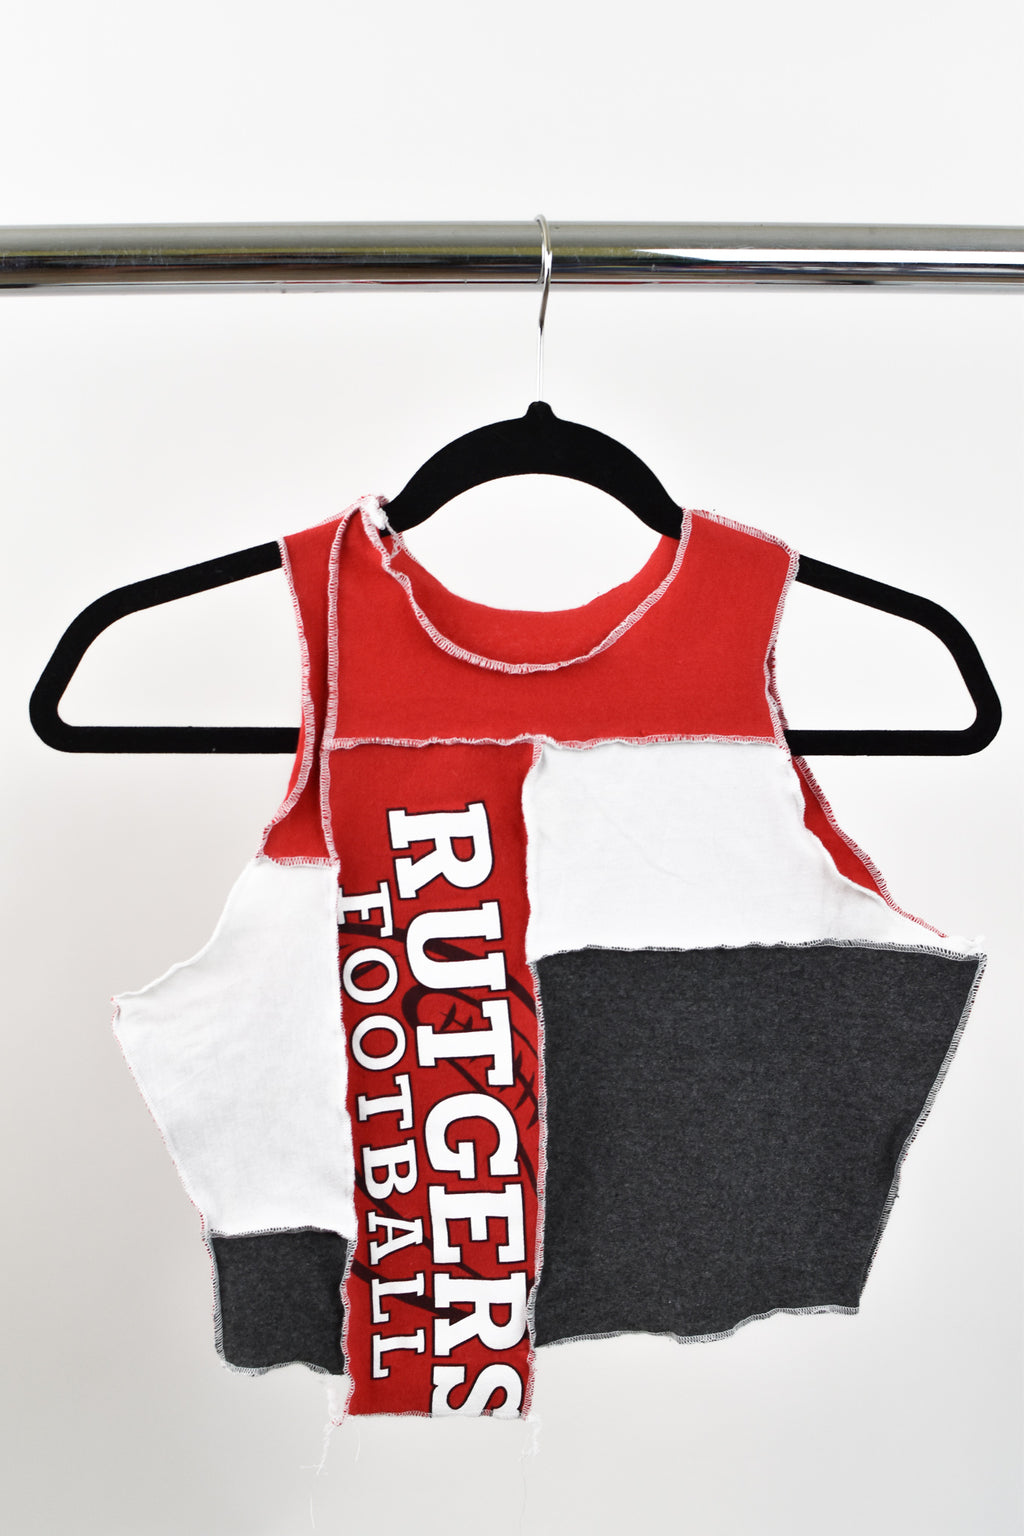 Upcycled Rutgers University Scrappy Top